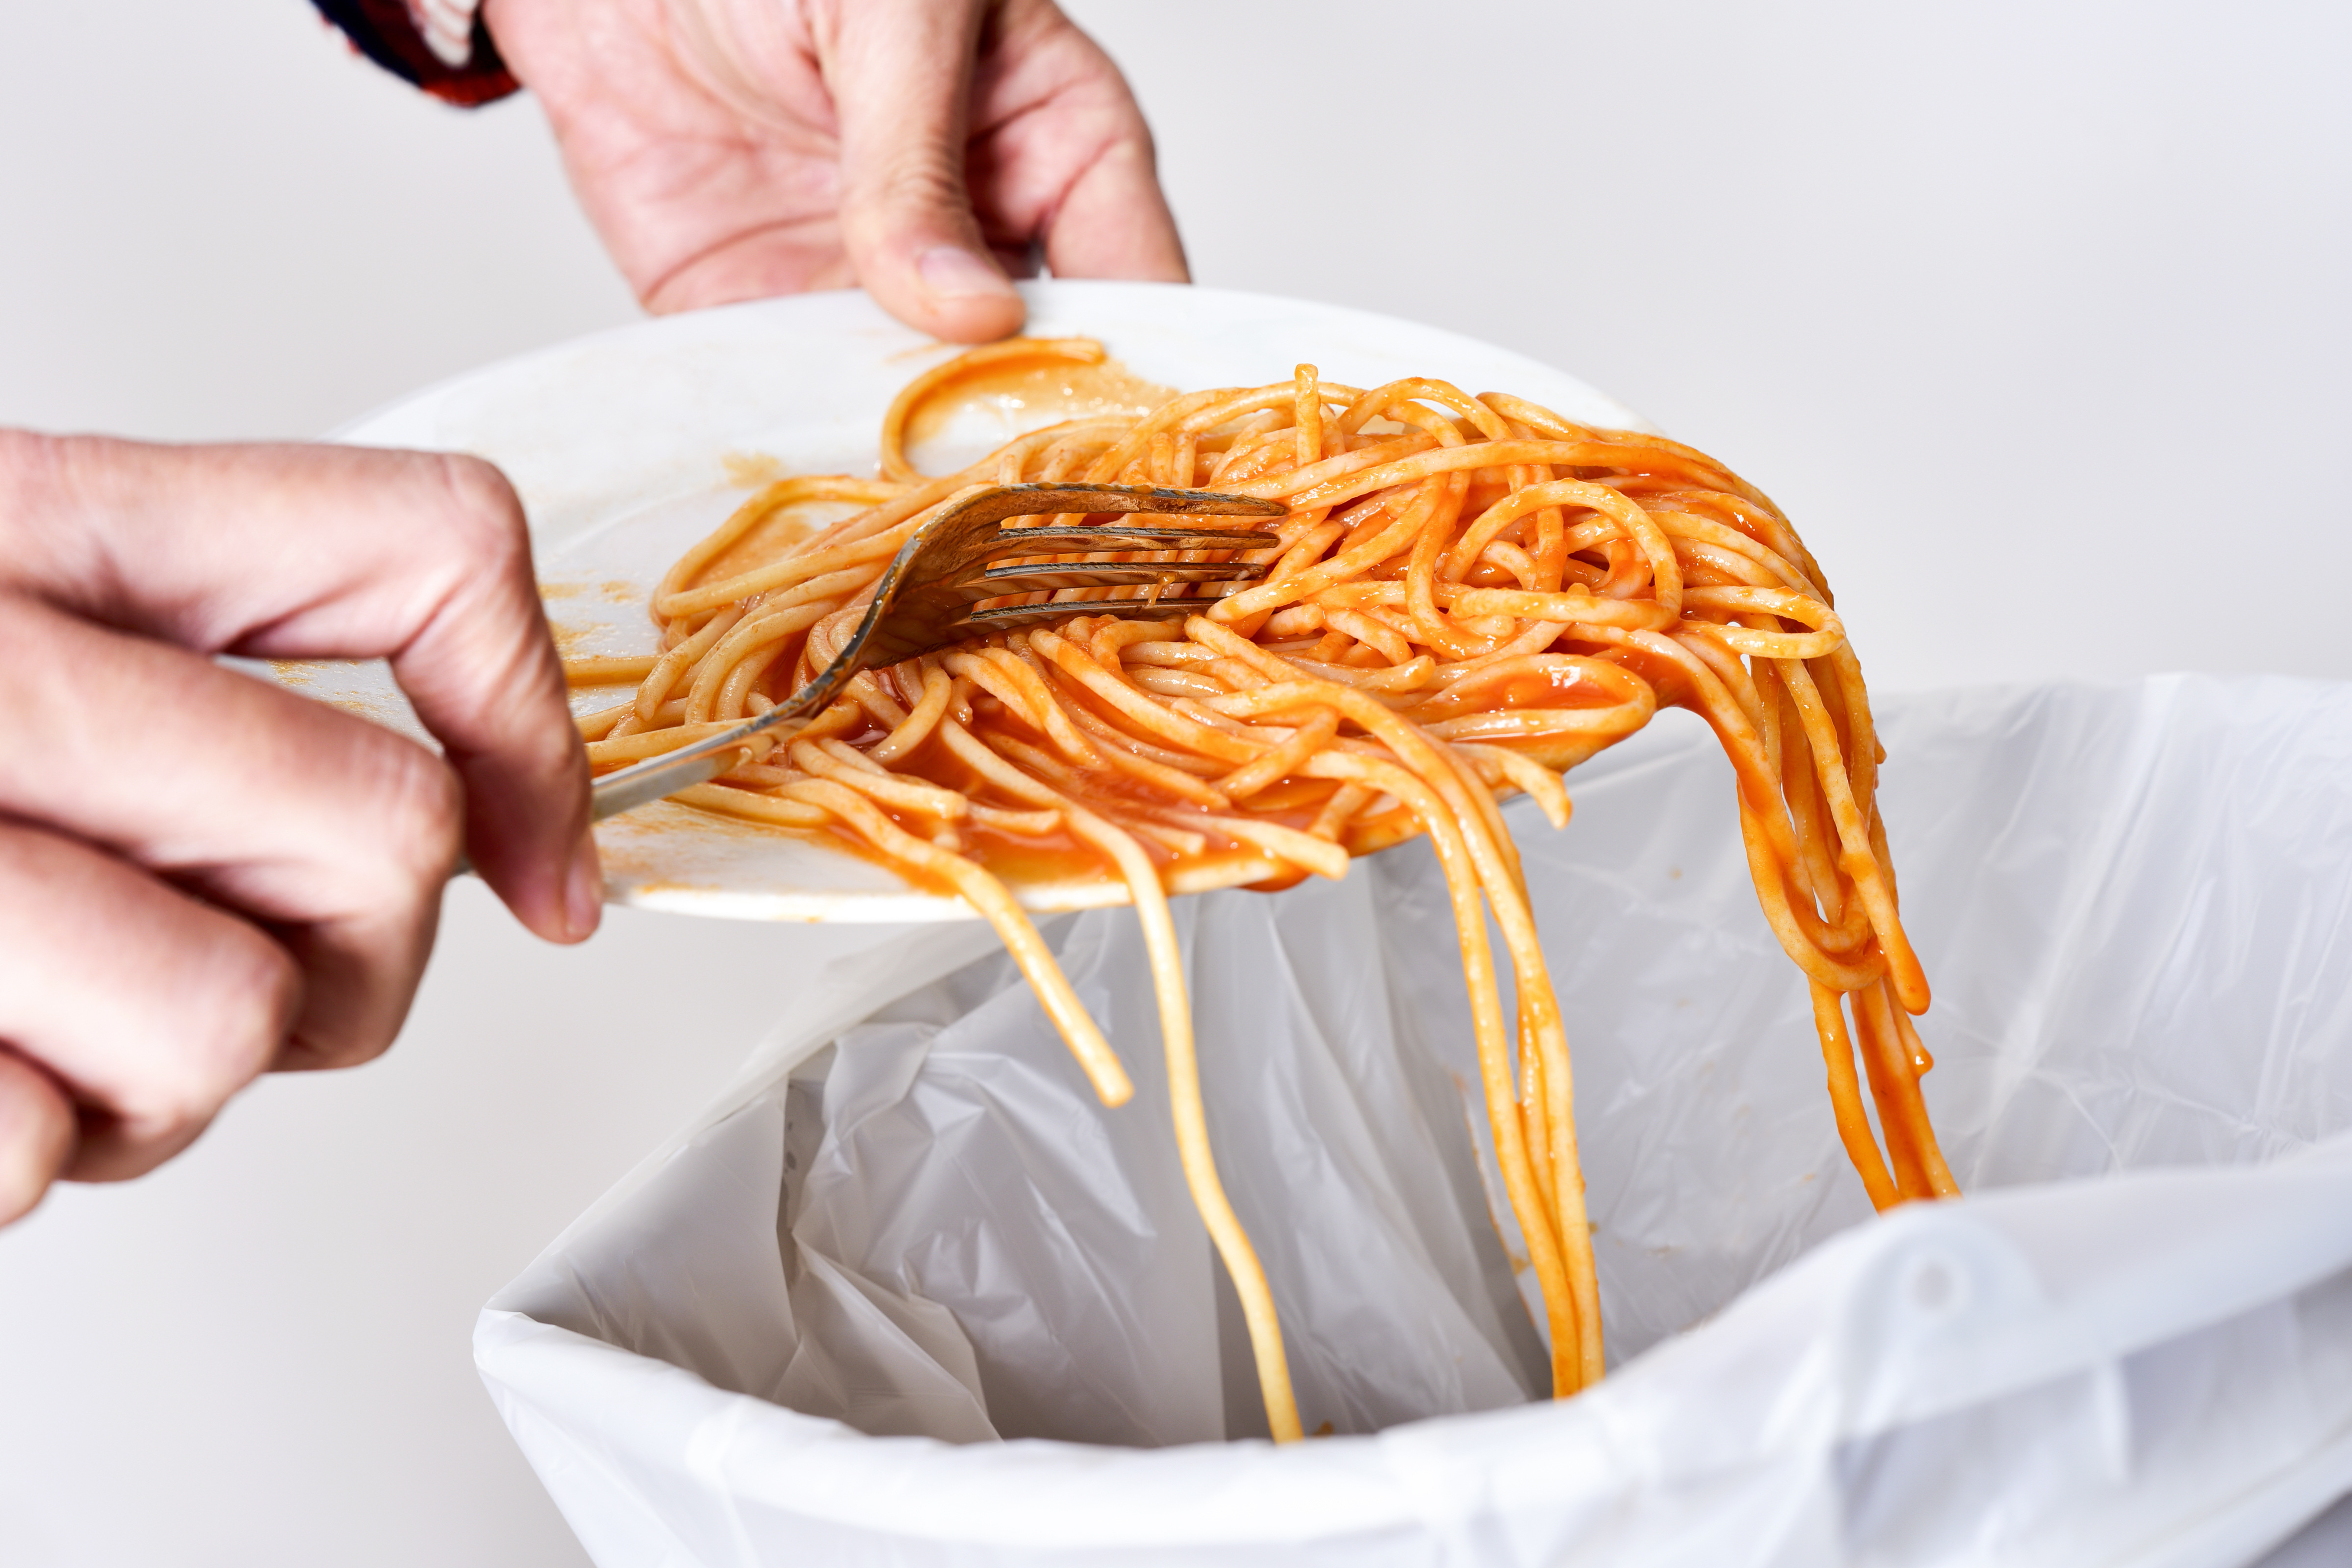 Hands scraping a plate of spaghetti into the trash.